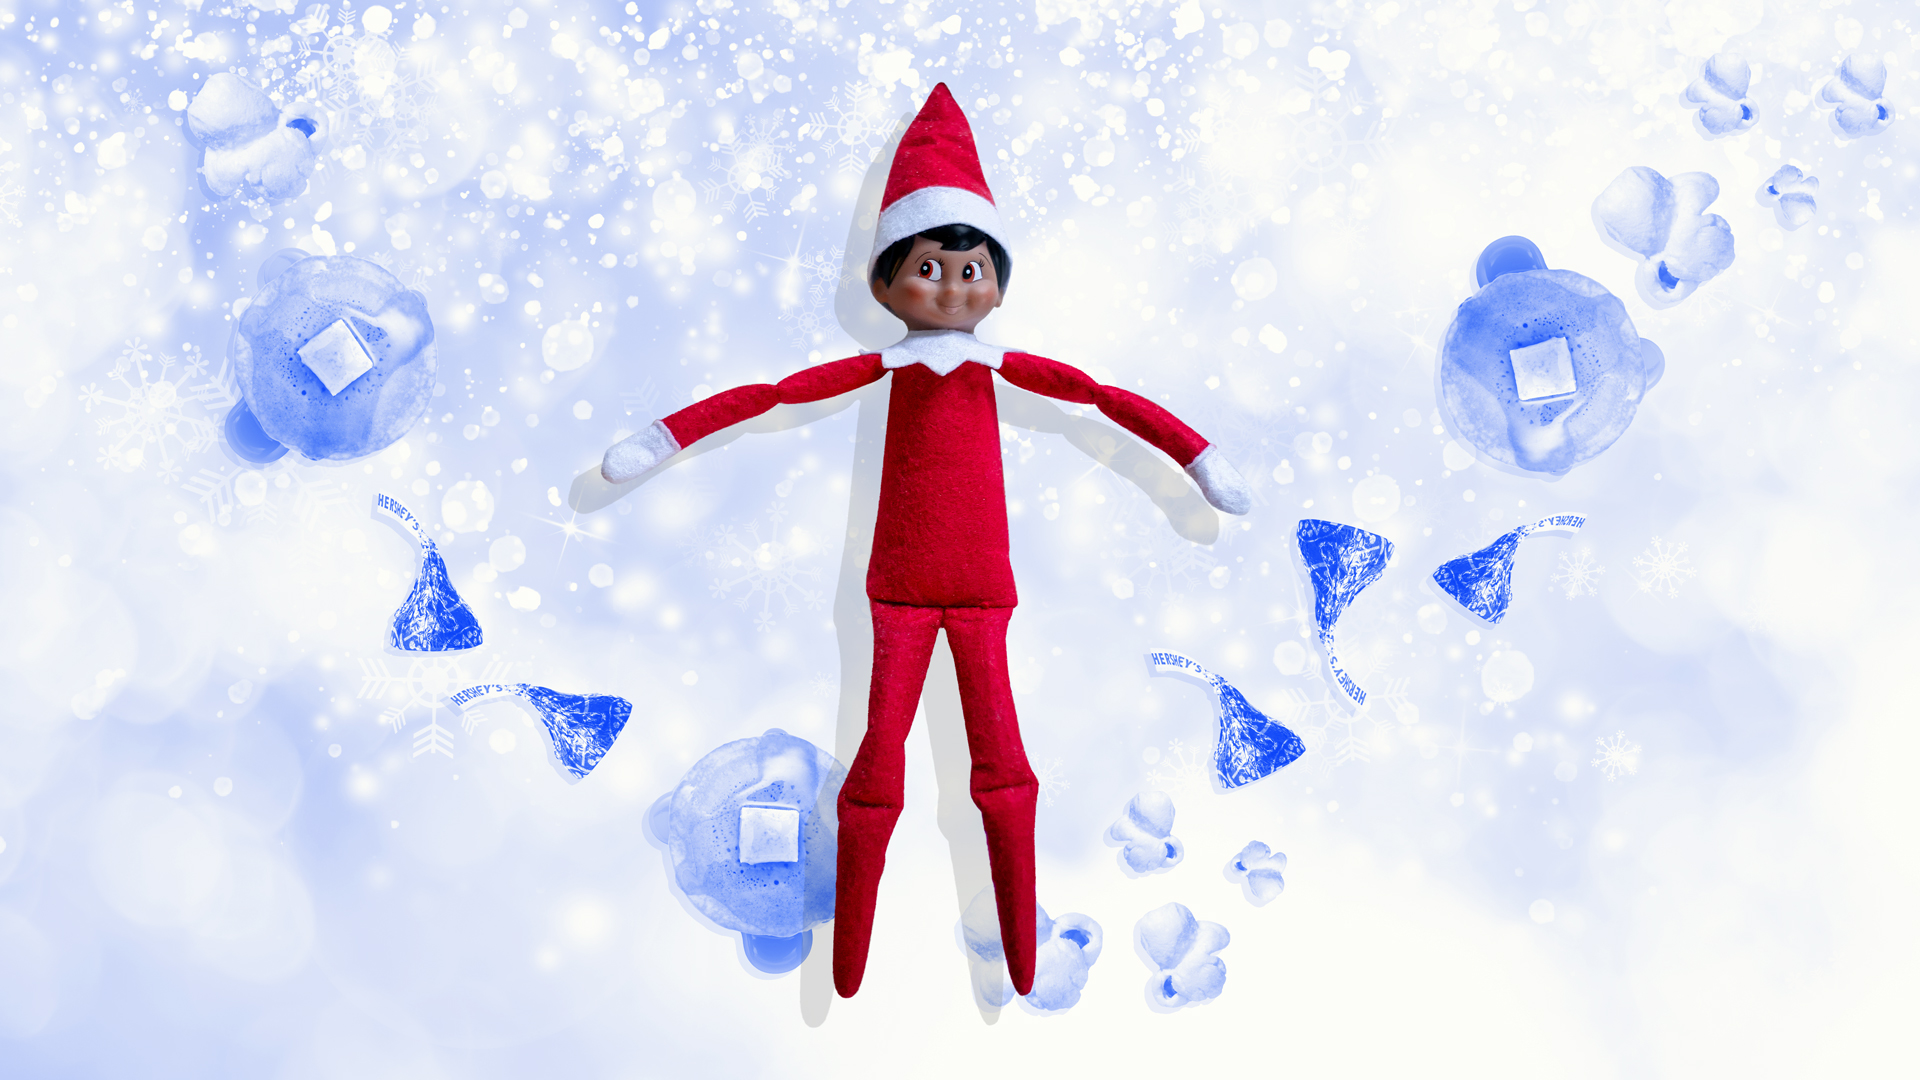 Easy Elf On The Shelf Ideas For Lazy Parents That Require No